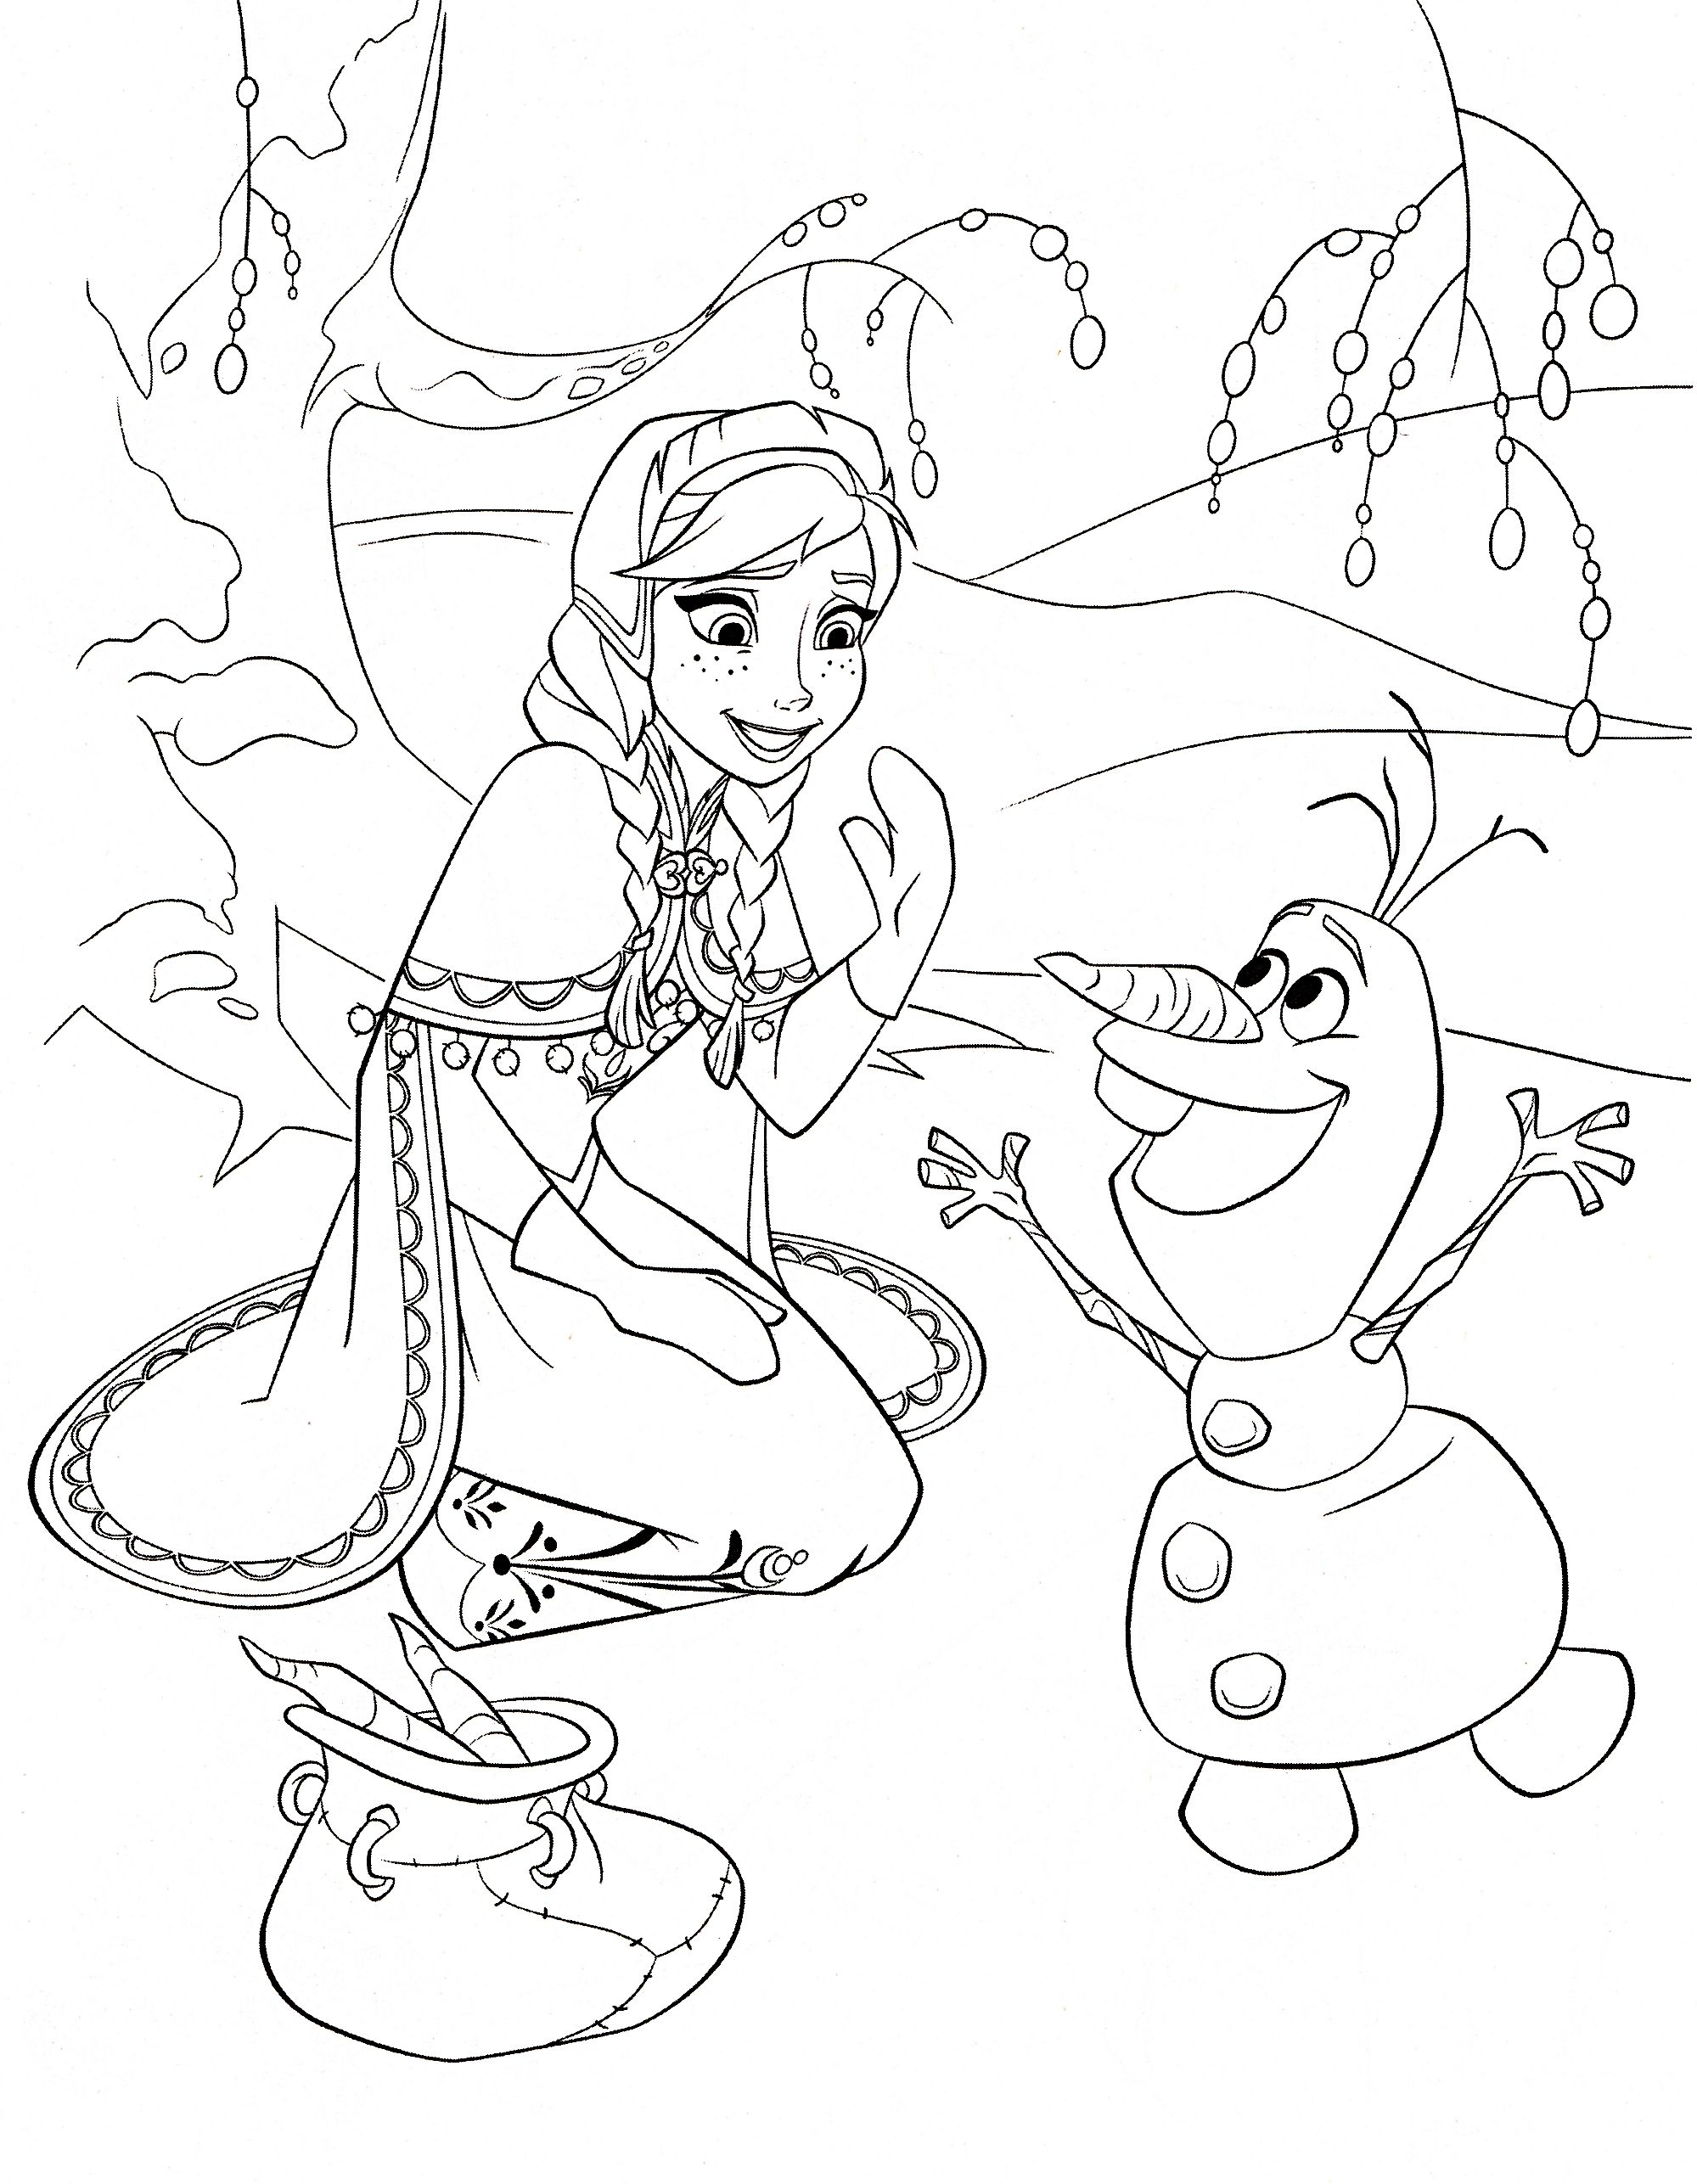 Coloring pages frozen - Free Frozen Printable Coloring Activity Pages Plus Free Computer Games